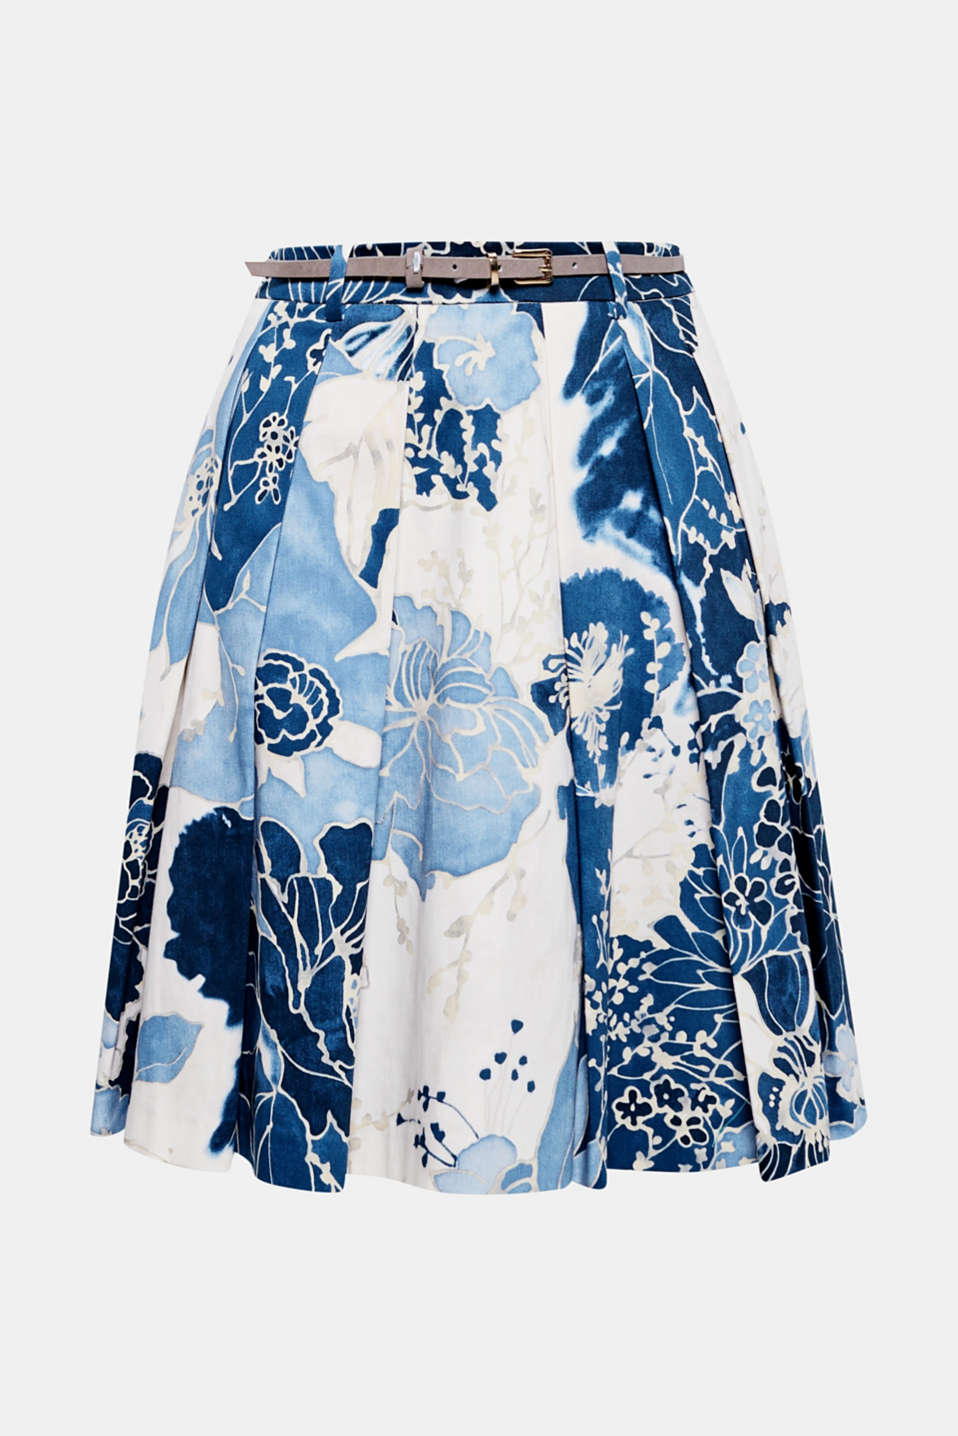 The striking floral print looks like watercolour on this satin skirt with feminine pleats and a charming flared silhouette!